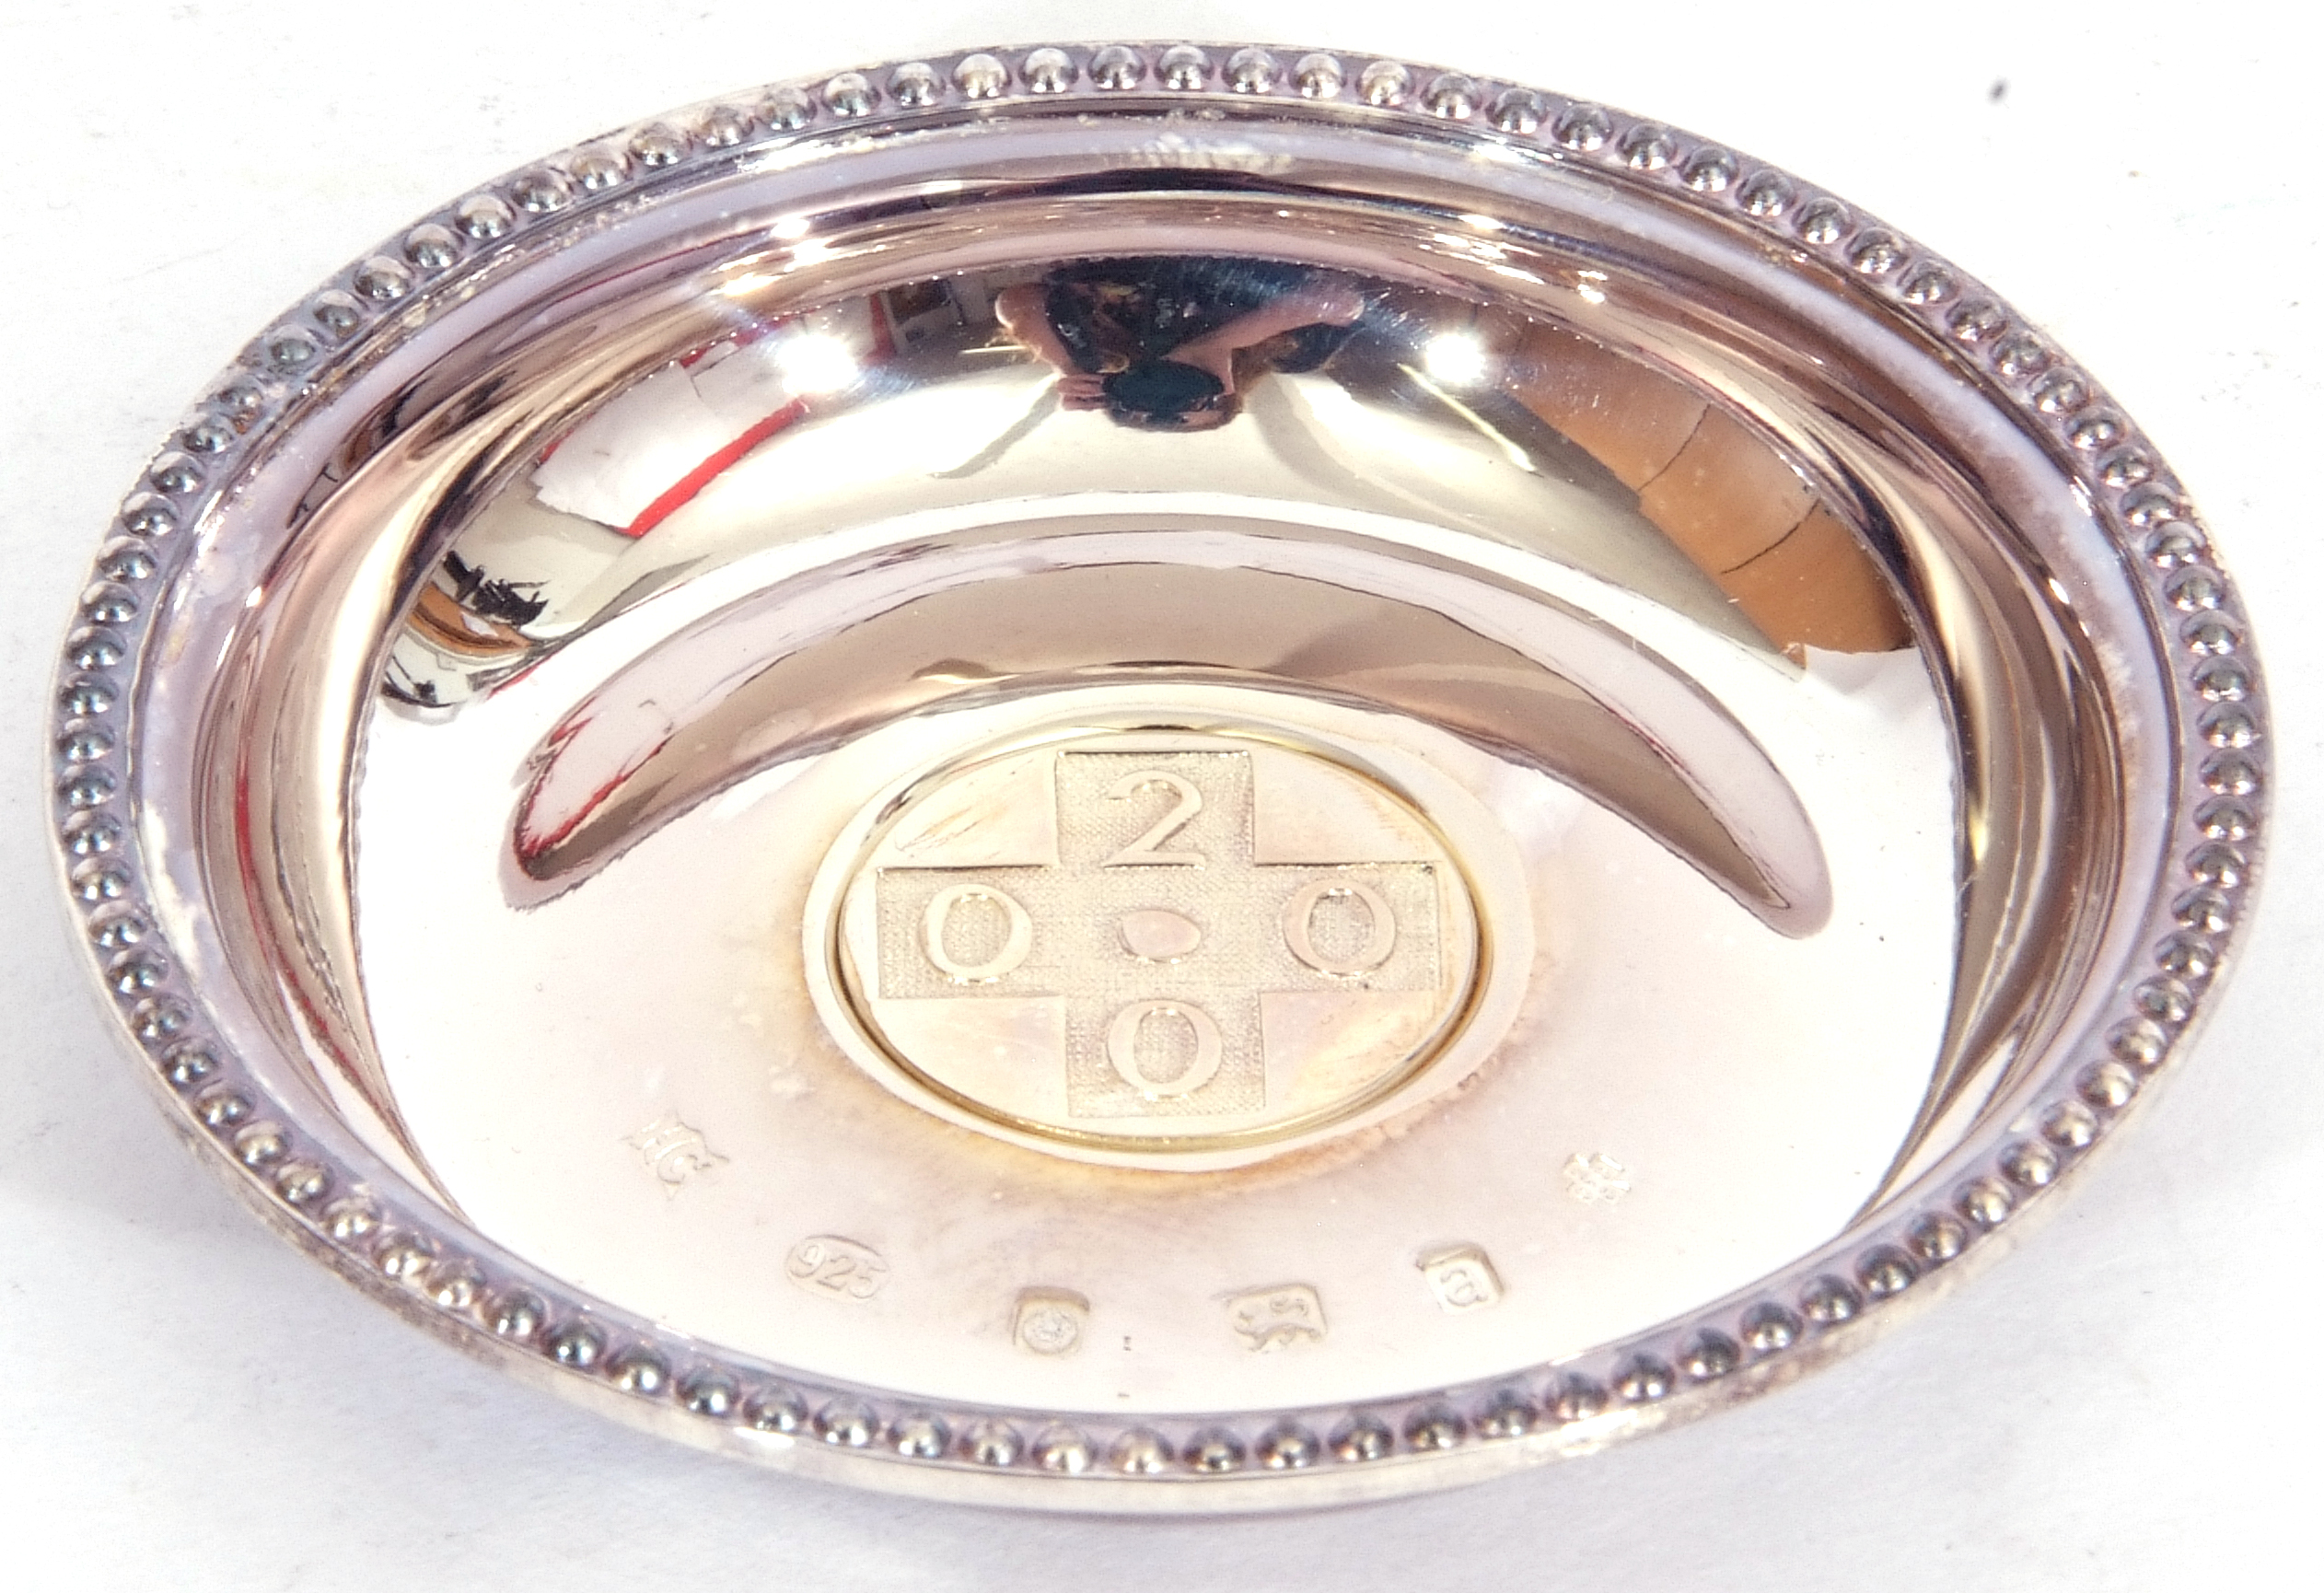 """Hallmarked silver miniature circular dish, """"2000"""" together with a French agricultural medallion - Image 4 of 9"""